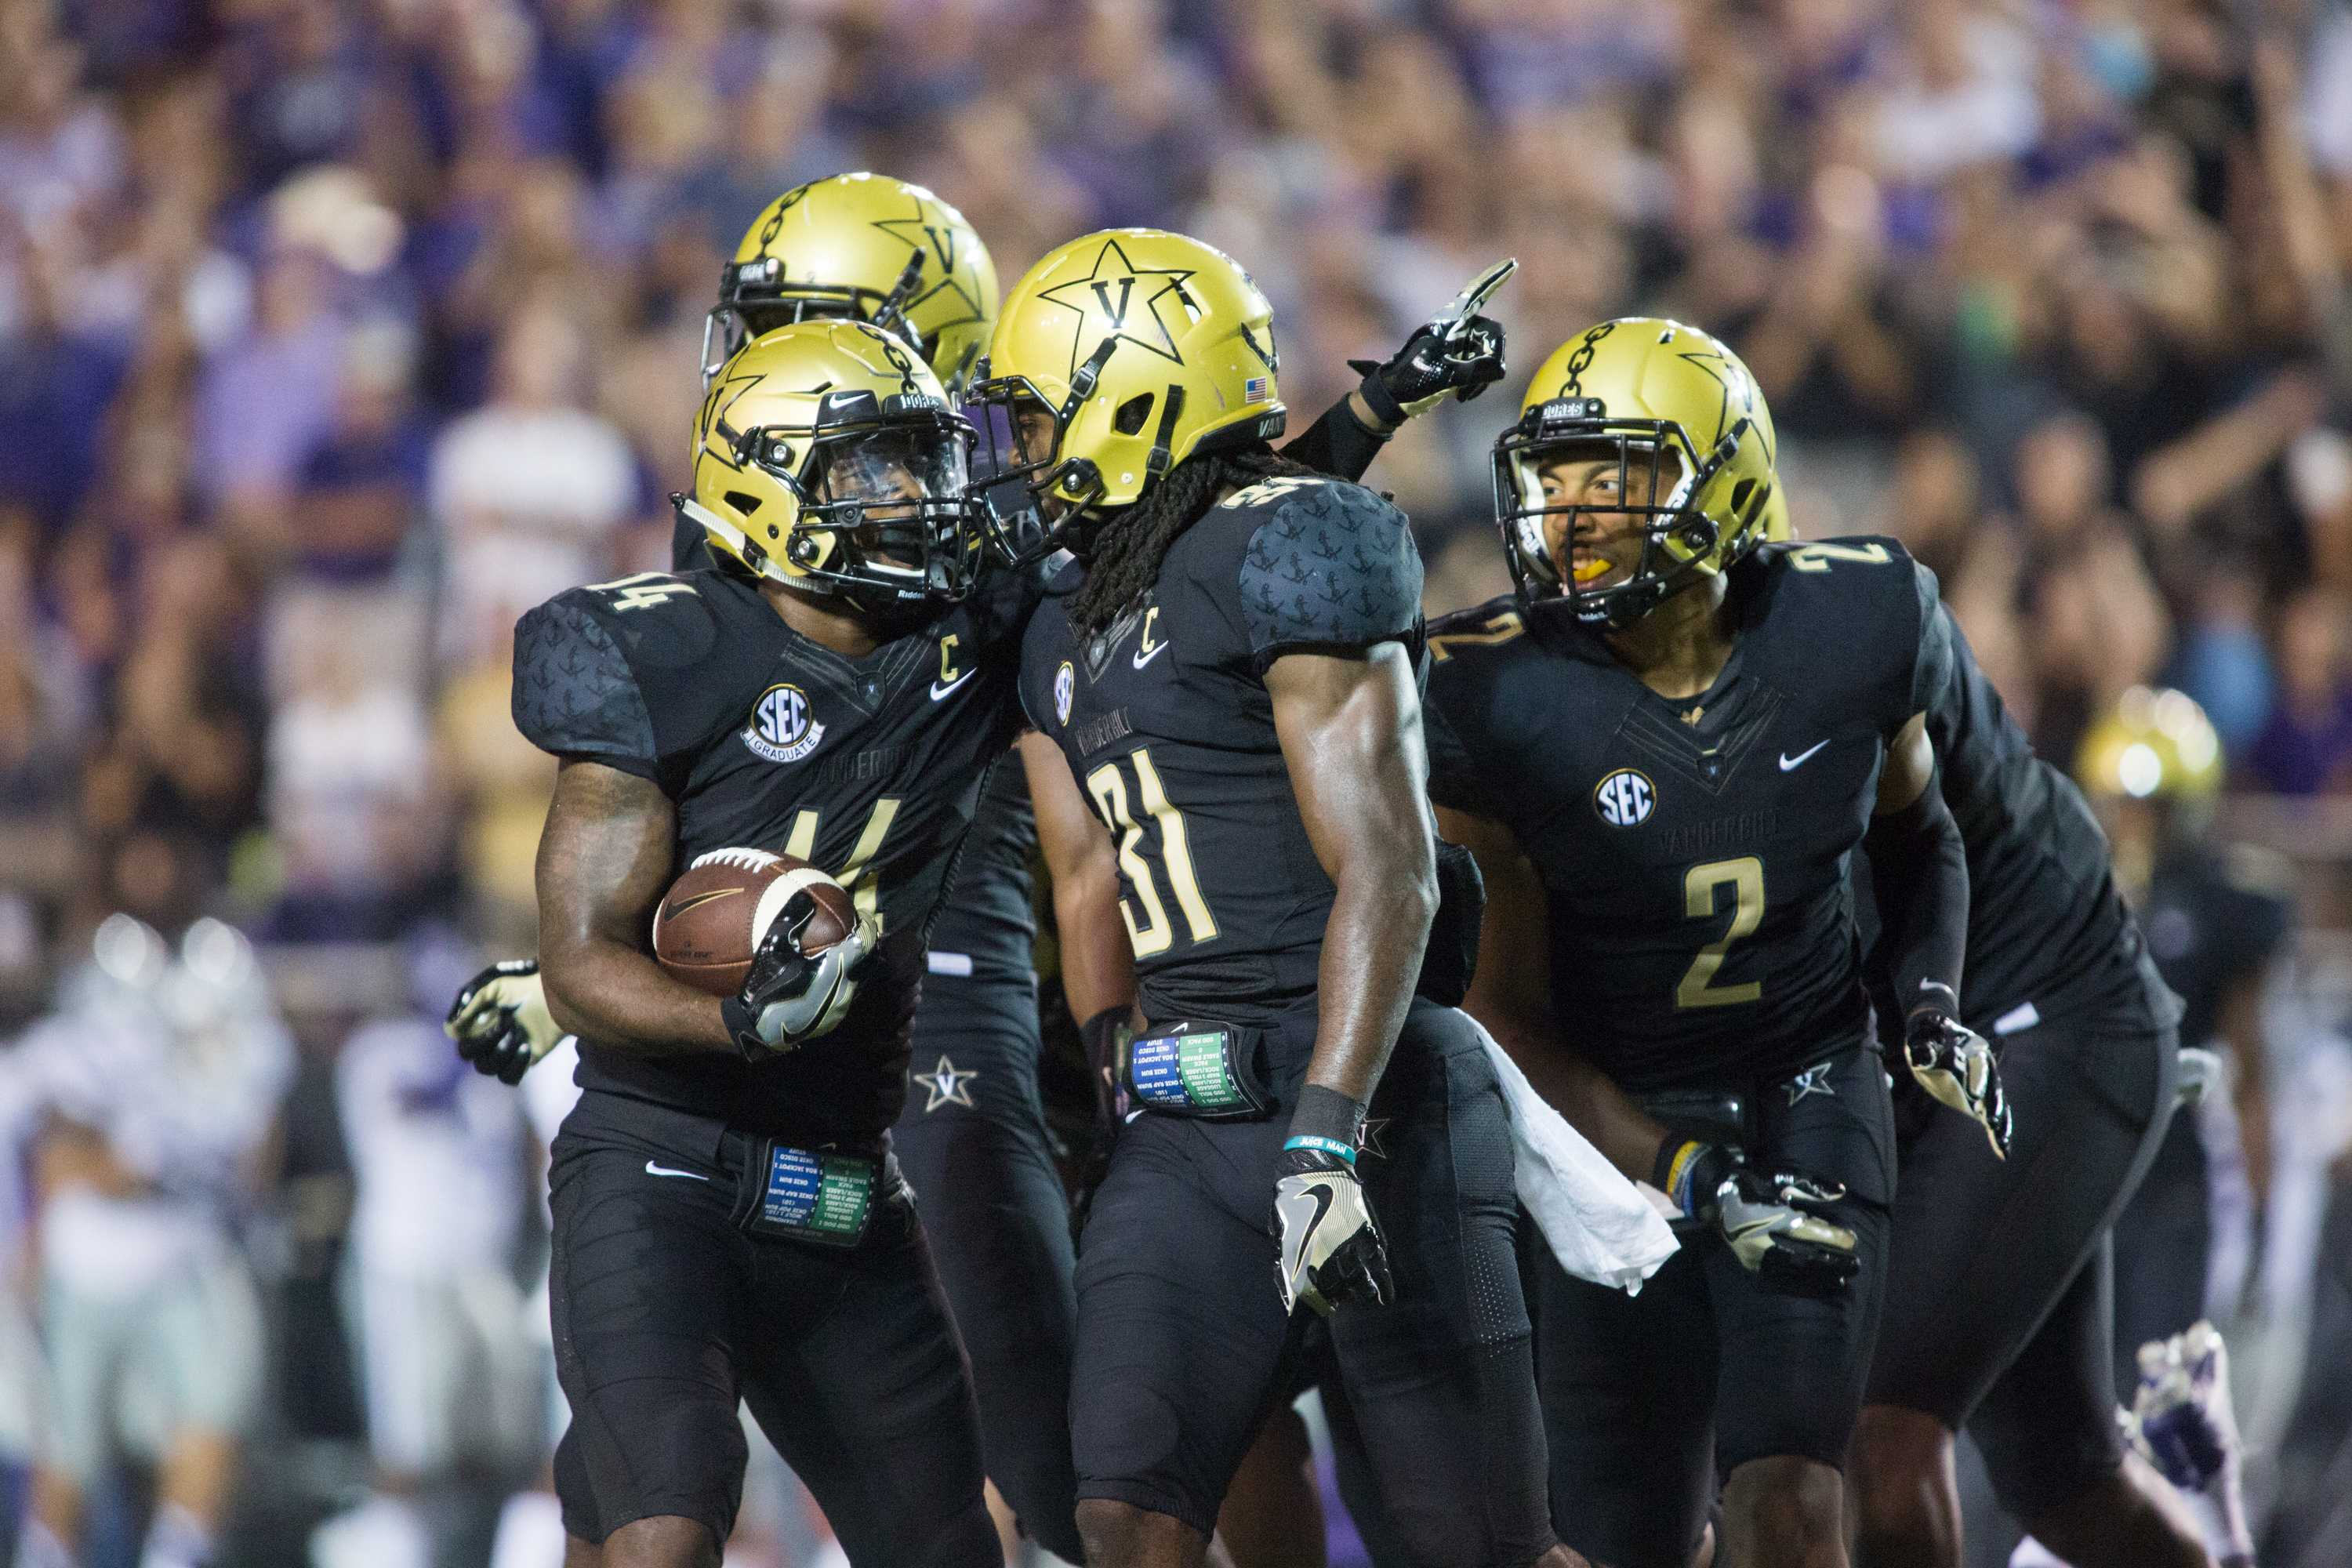 Vanderbilt takes on Kansas State on Saturday, September 16, 2017. Photo by Claire Barnett//The Vanderbilt Hustler.